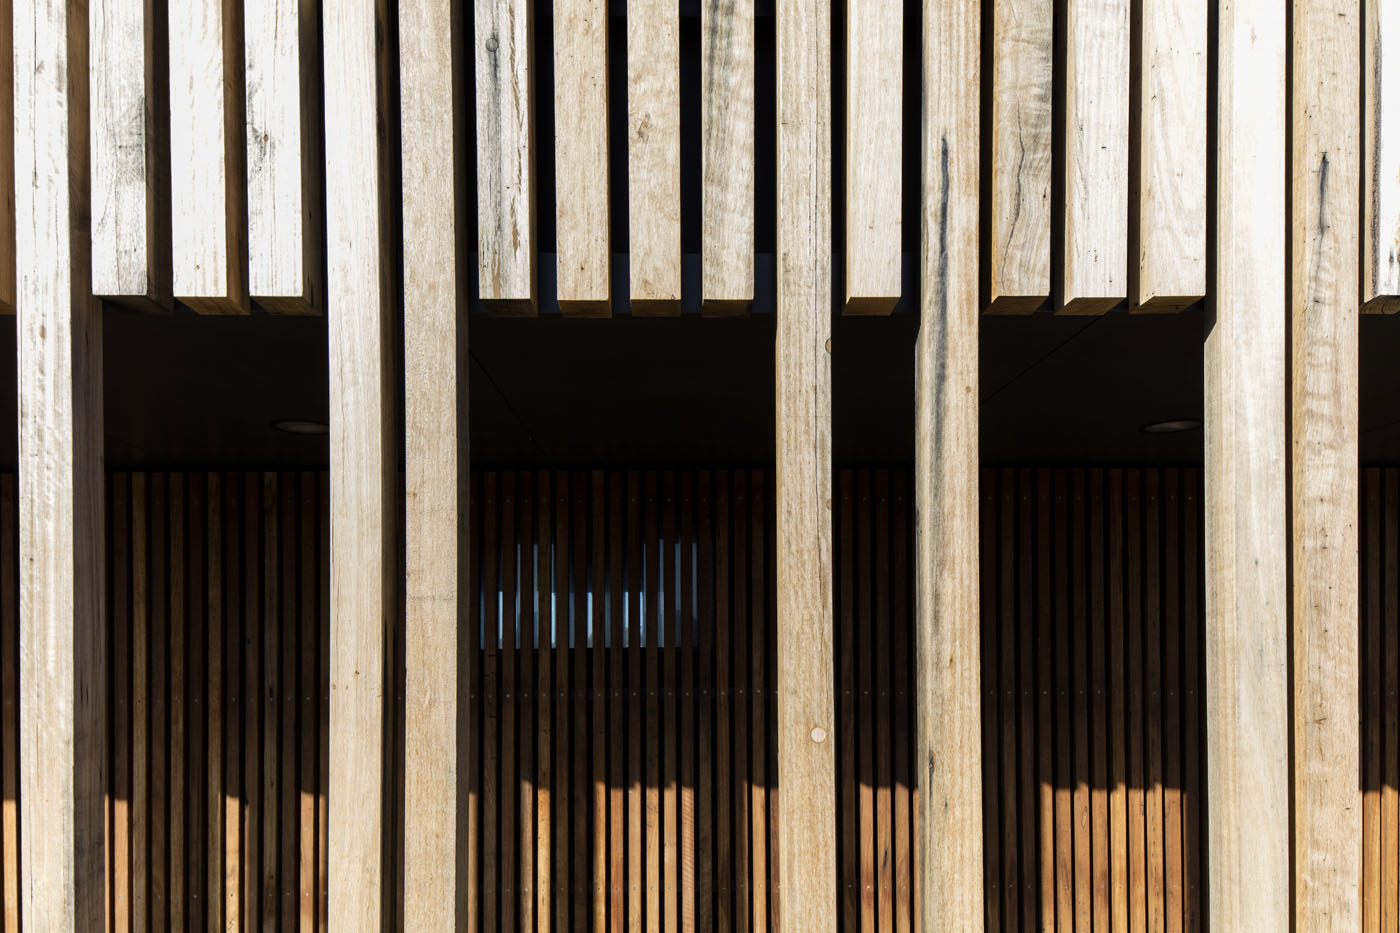 Marks Park Amenities by Sam Crawford Architects, detail of recycled timber cladding